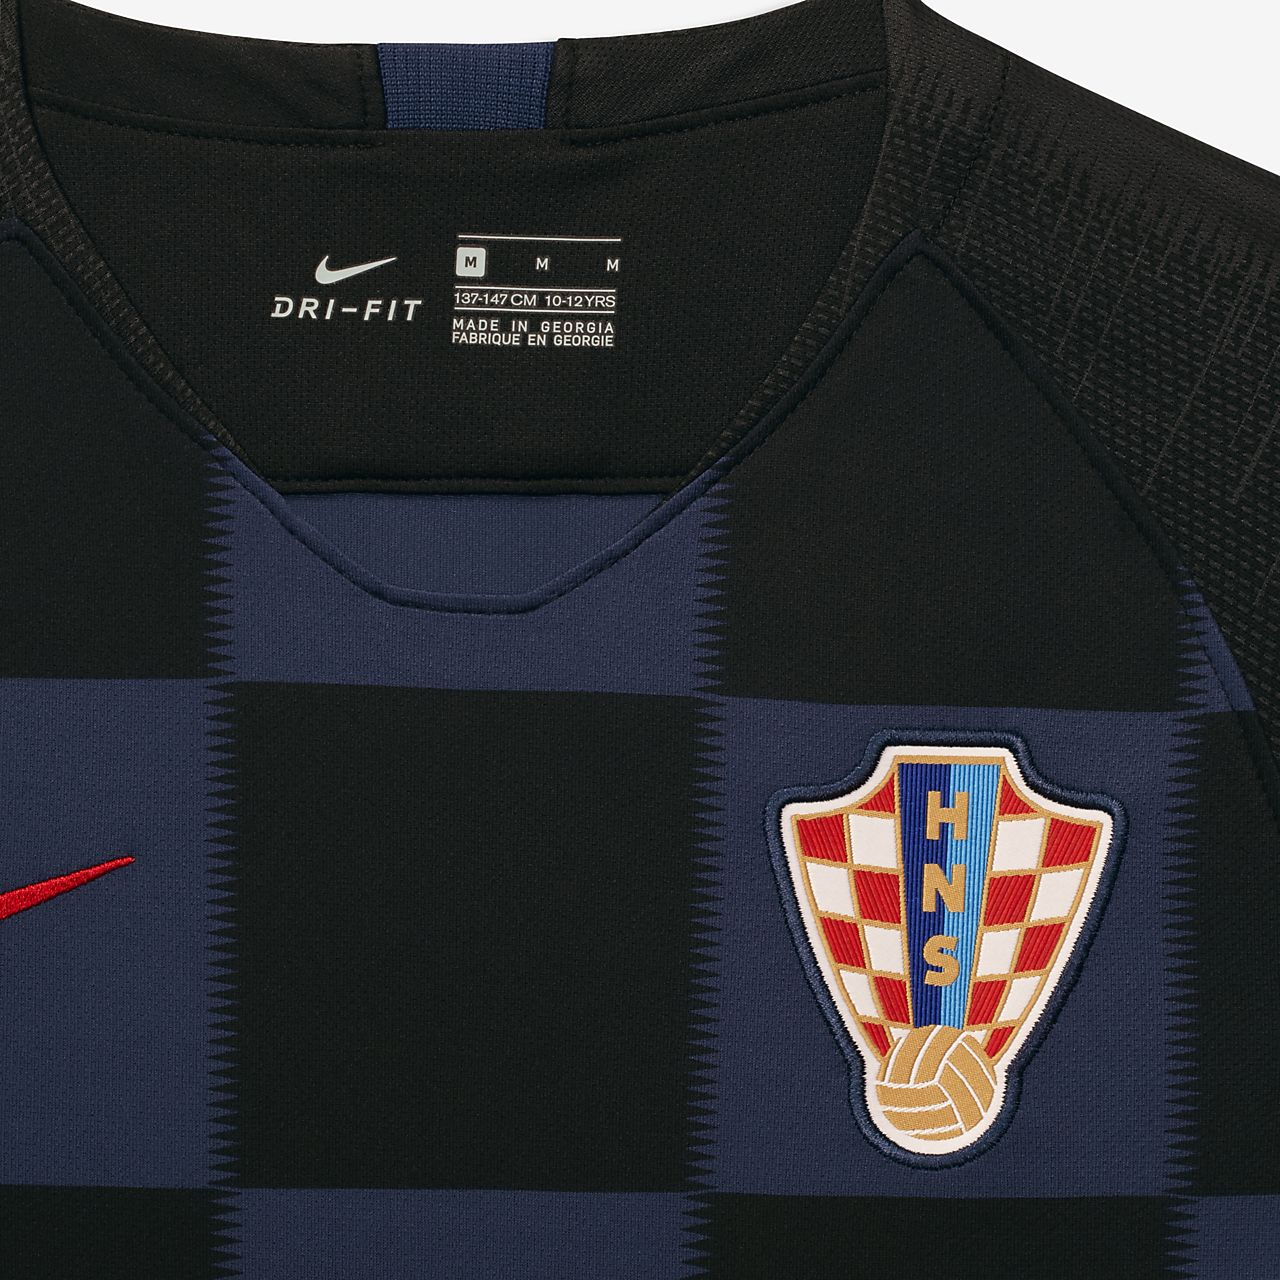 796bc9d25 2018 Croatia Stadium Away Older Kids  Football Shirt. Nike.com GB